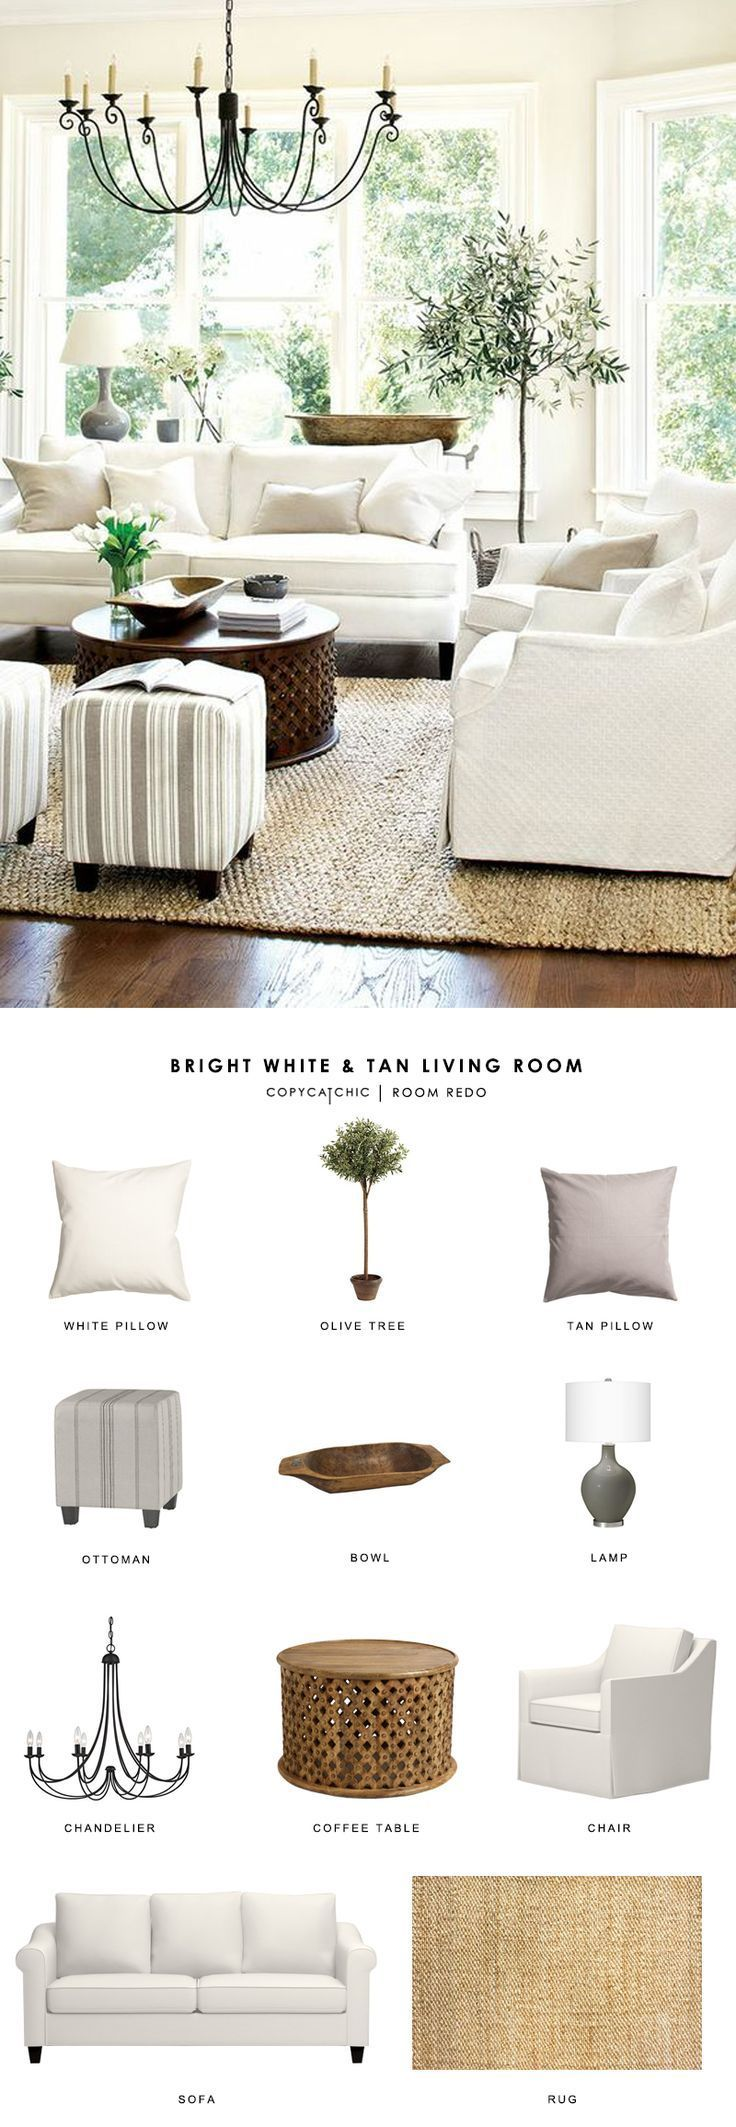 Copy Cat Chic Room Redo | Bright White and Tan Living Room | Cheap ...